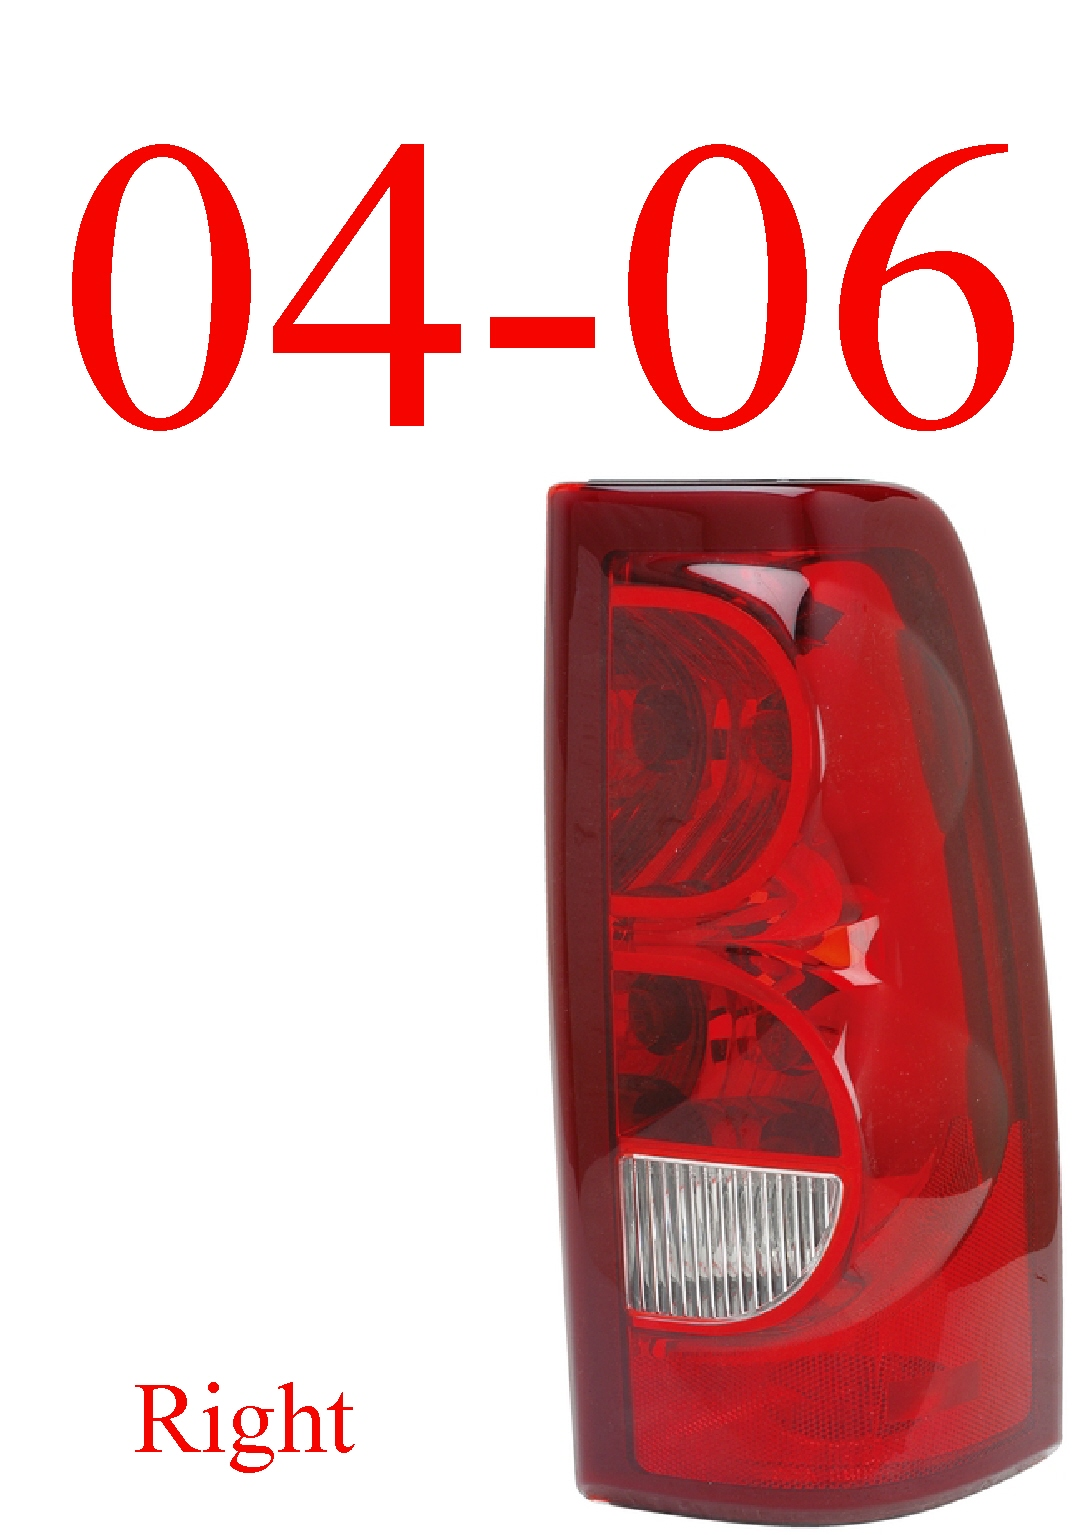 04-06 Chevy Right Tail Light, Silverado